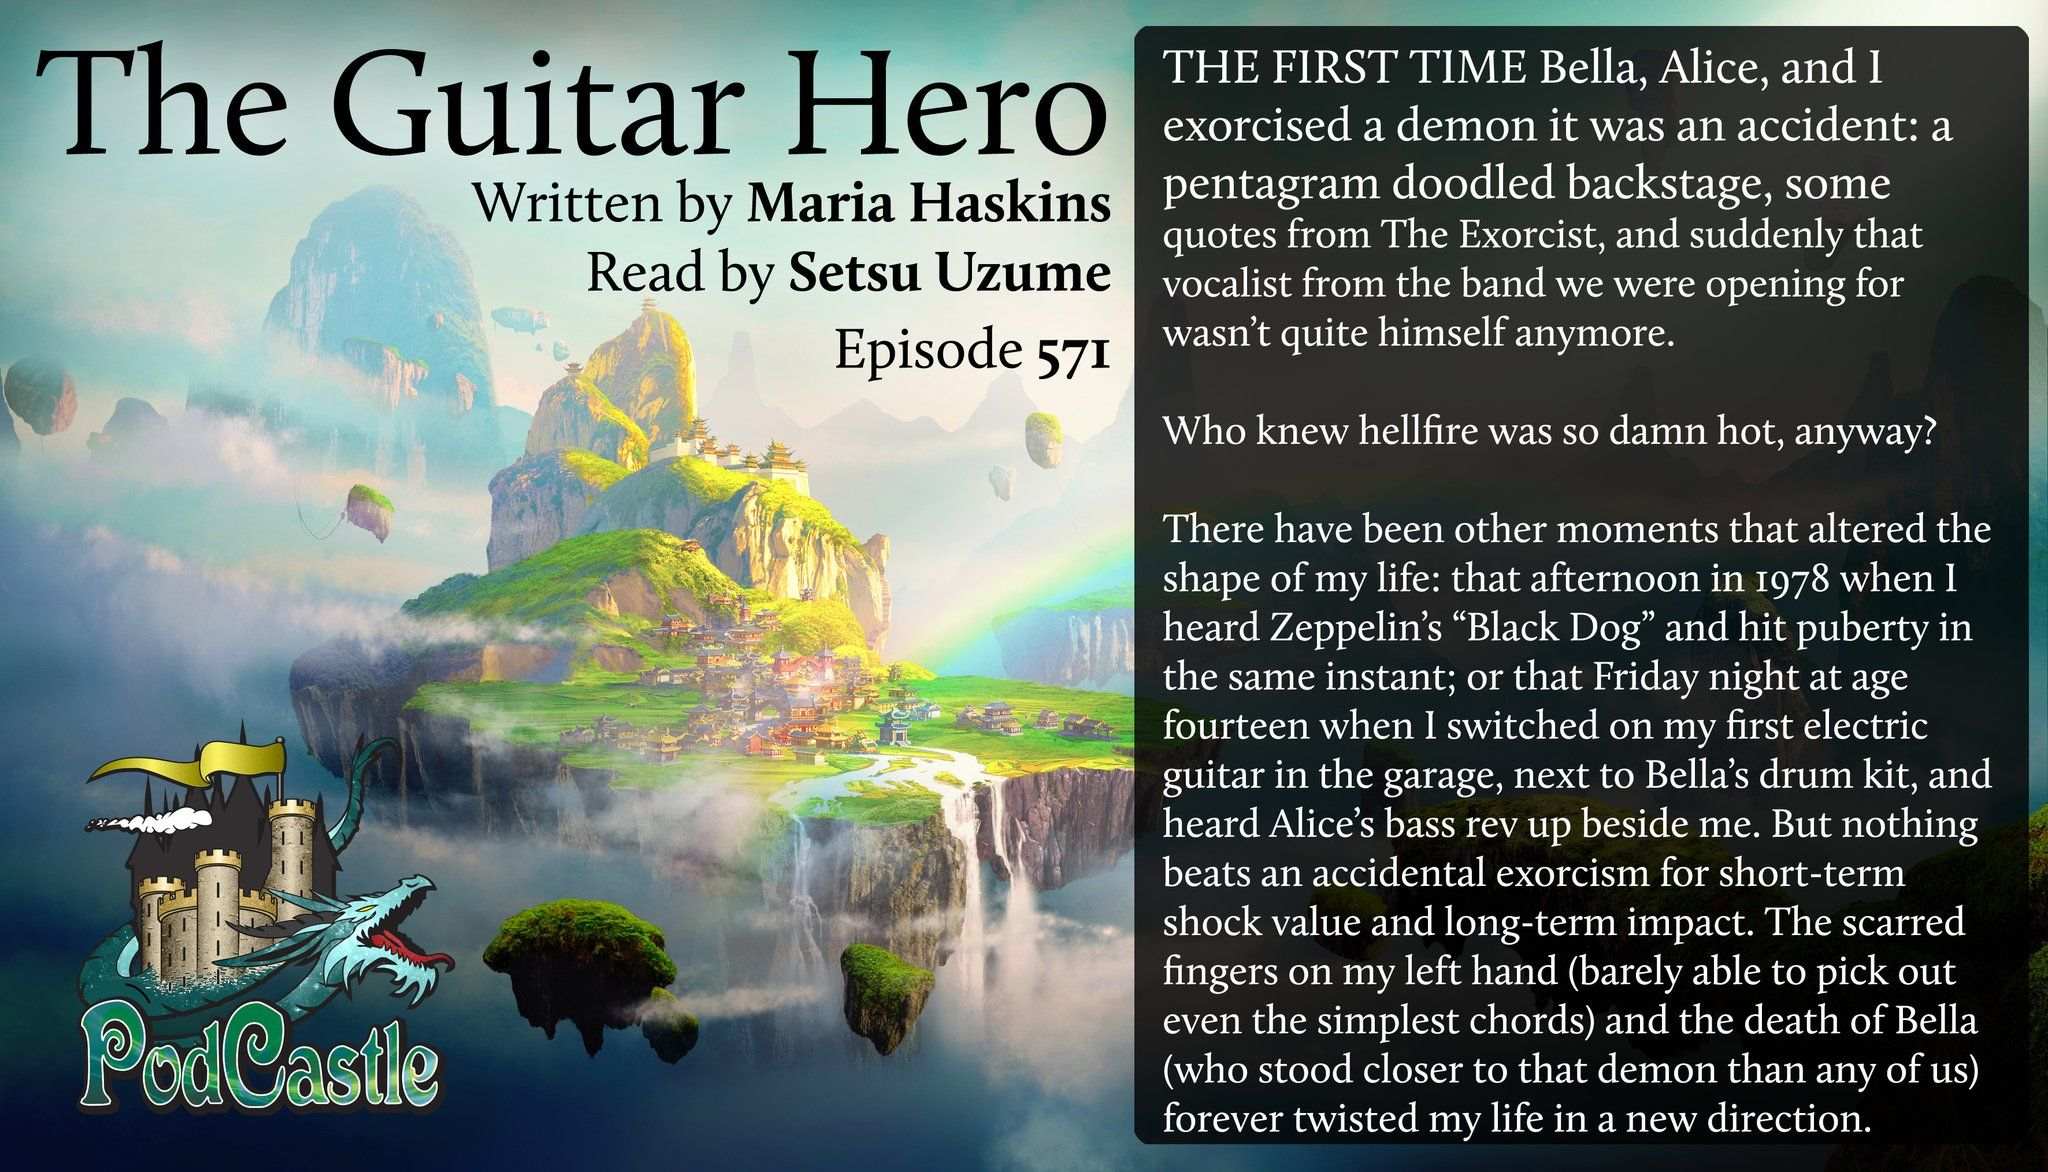 My story the Guitar Hero on the audio fiction podcast